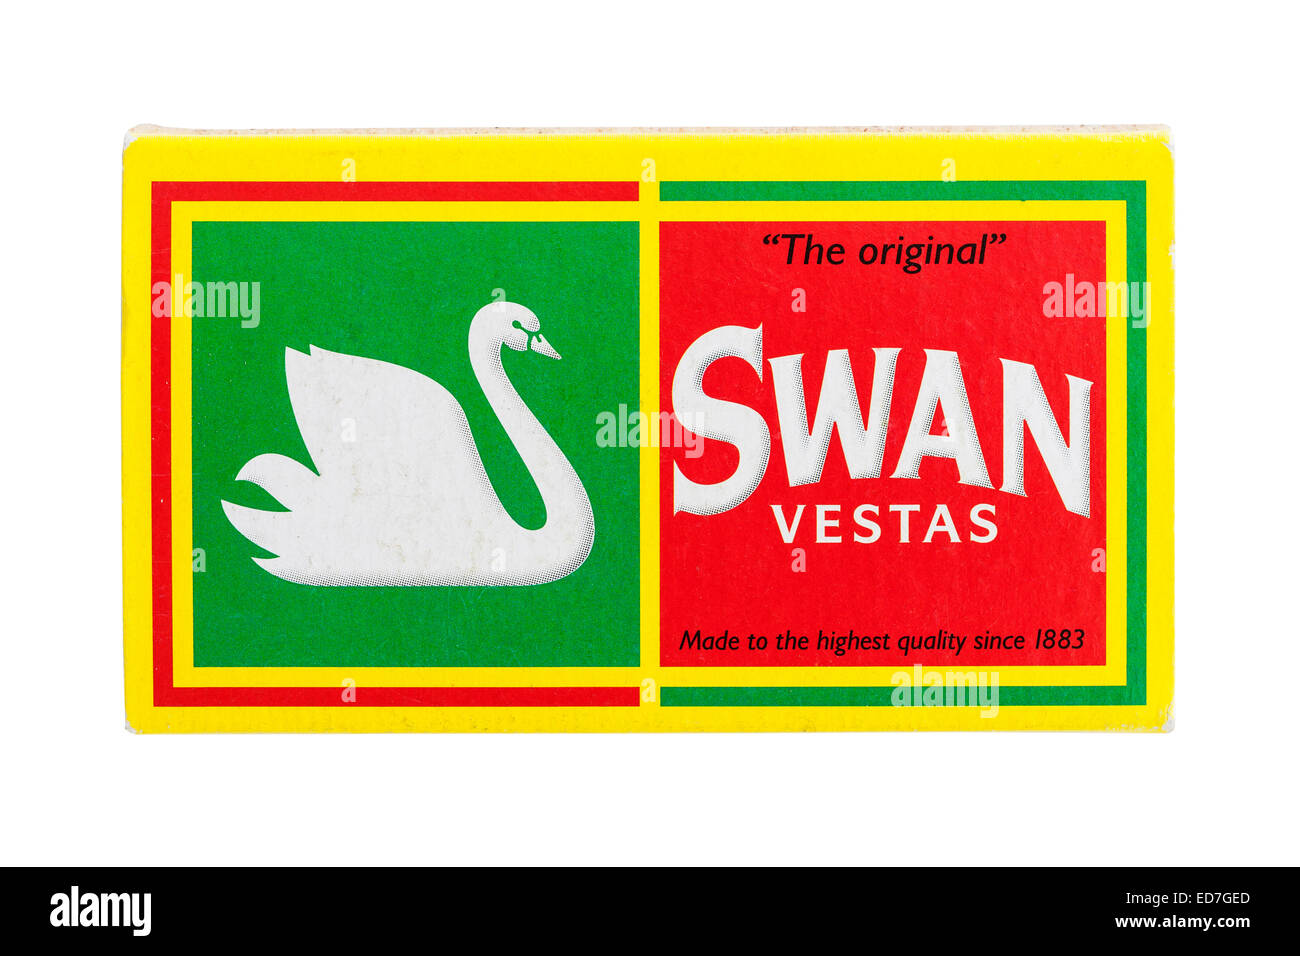 A box of Swan Vesta matches on a white background - Stock Image